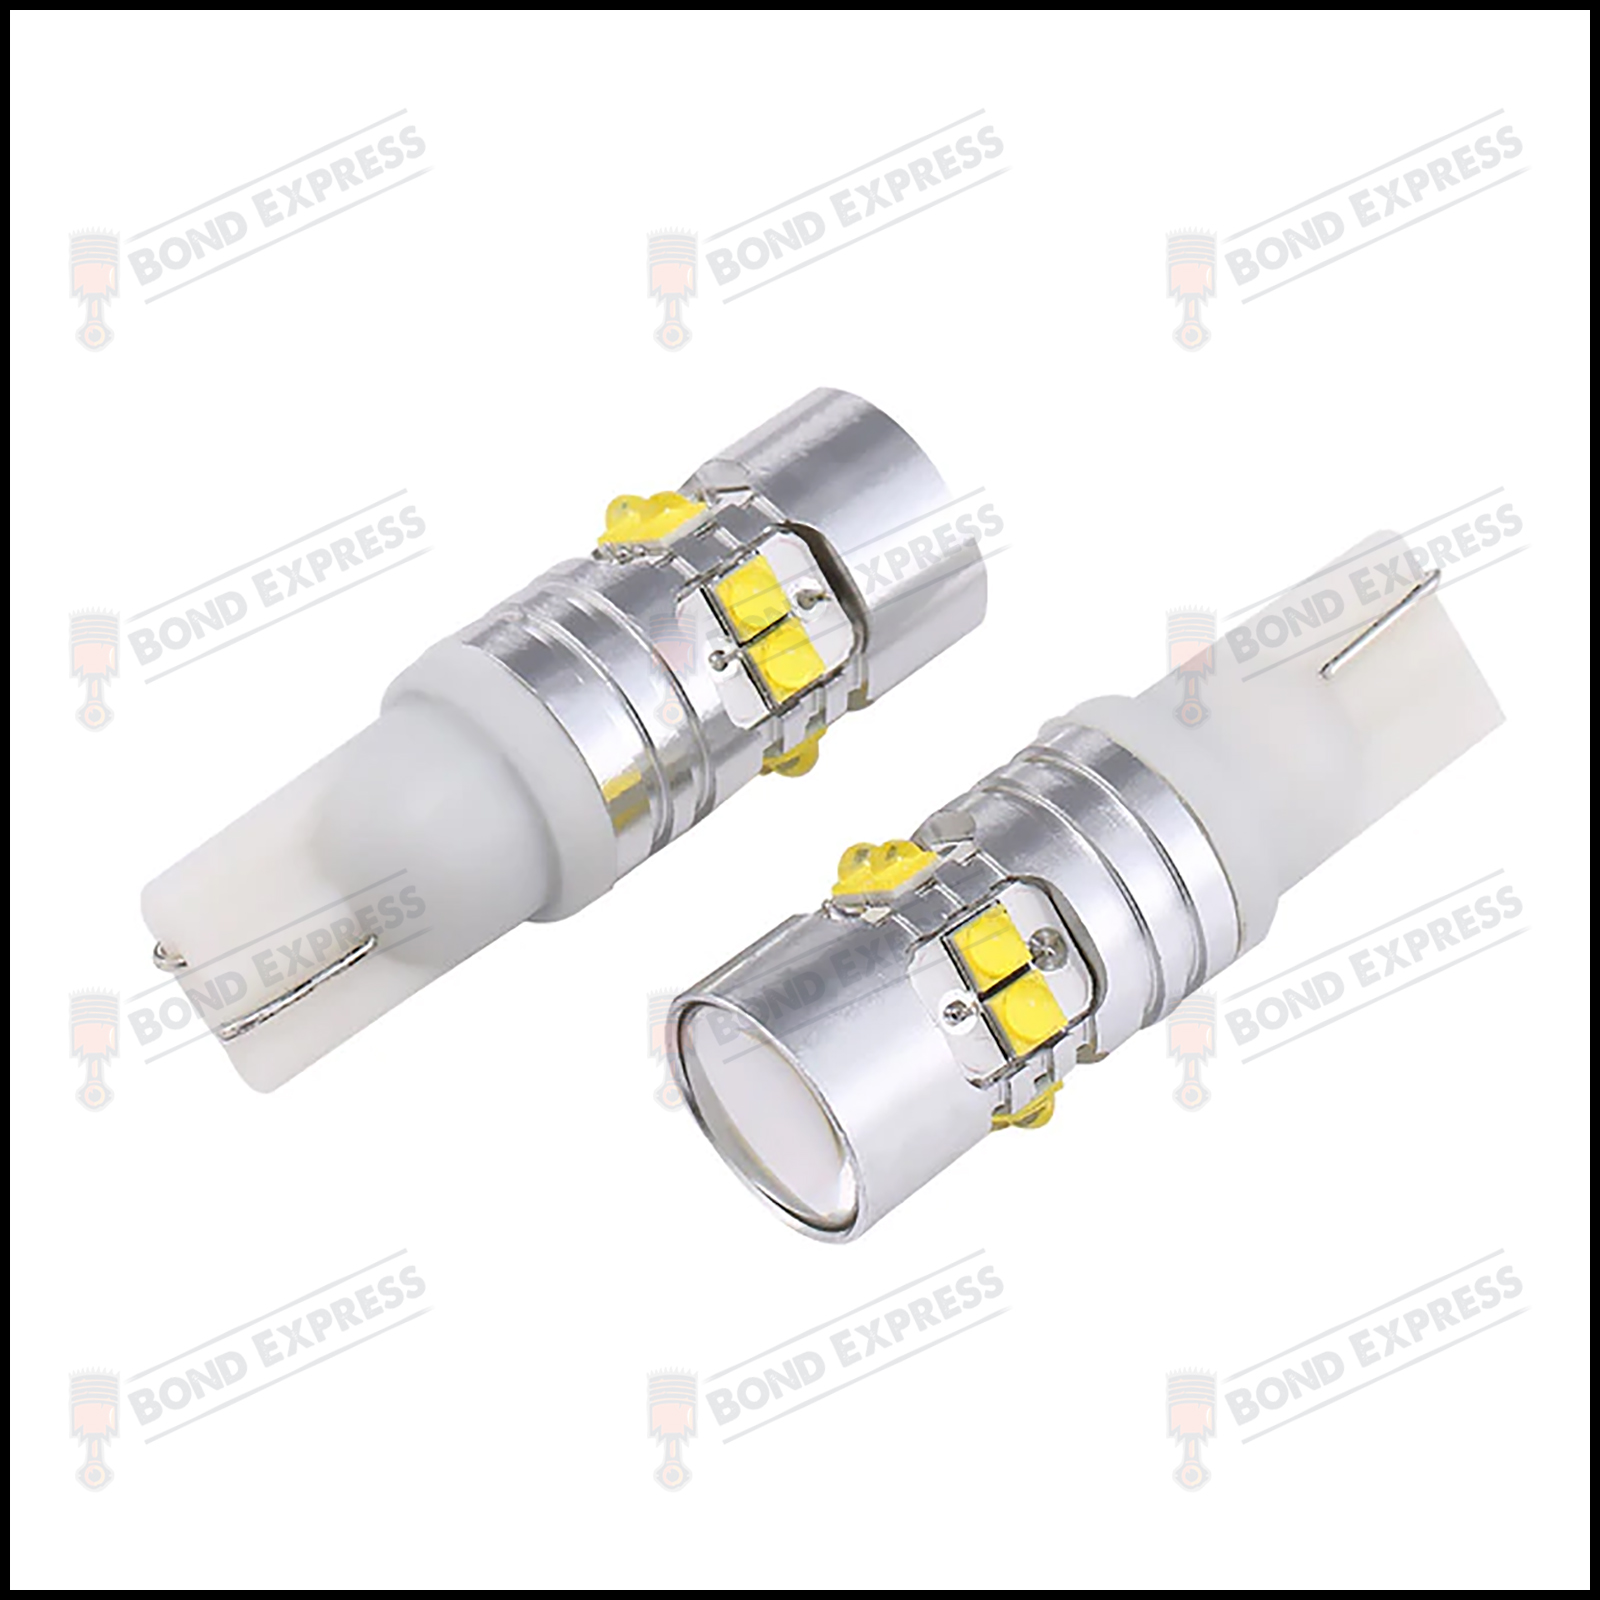 2x 1156 20 smd 3030 Bulbs DRL Reverse LED Super Bright White Cree canbus 5000k